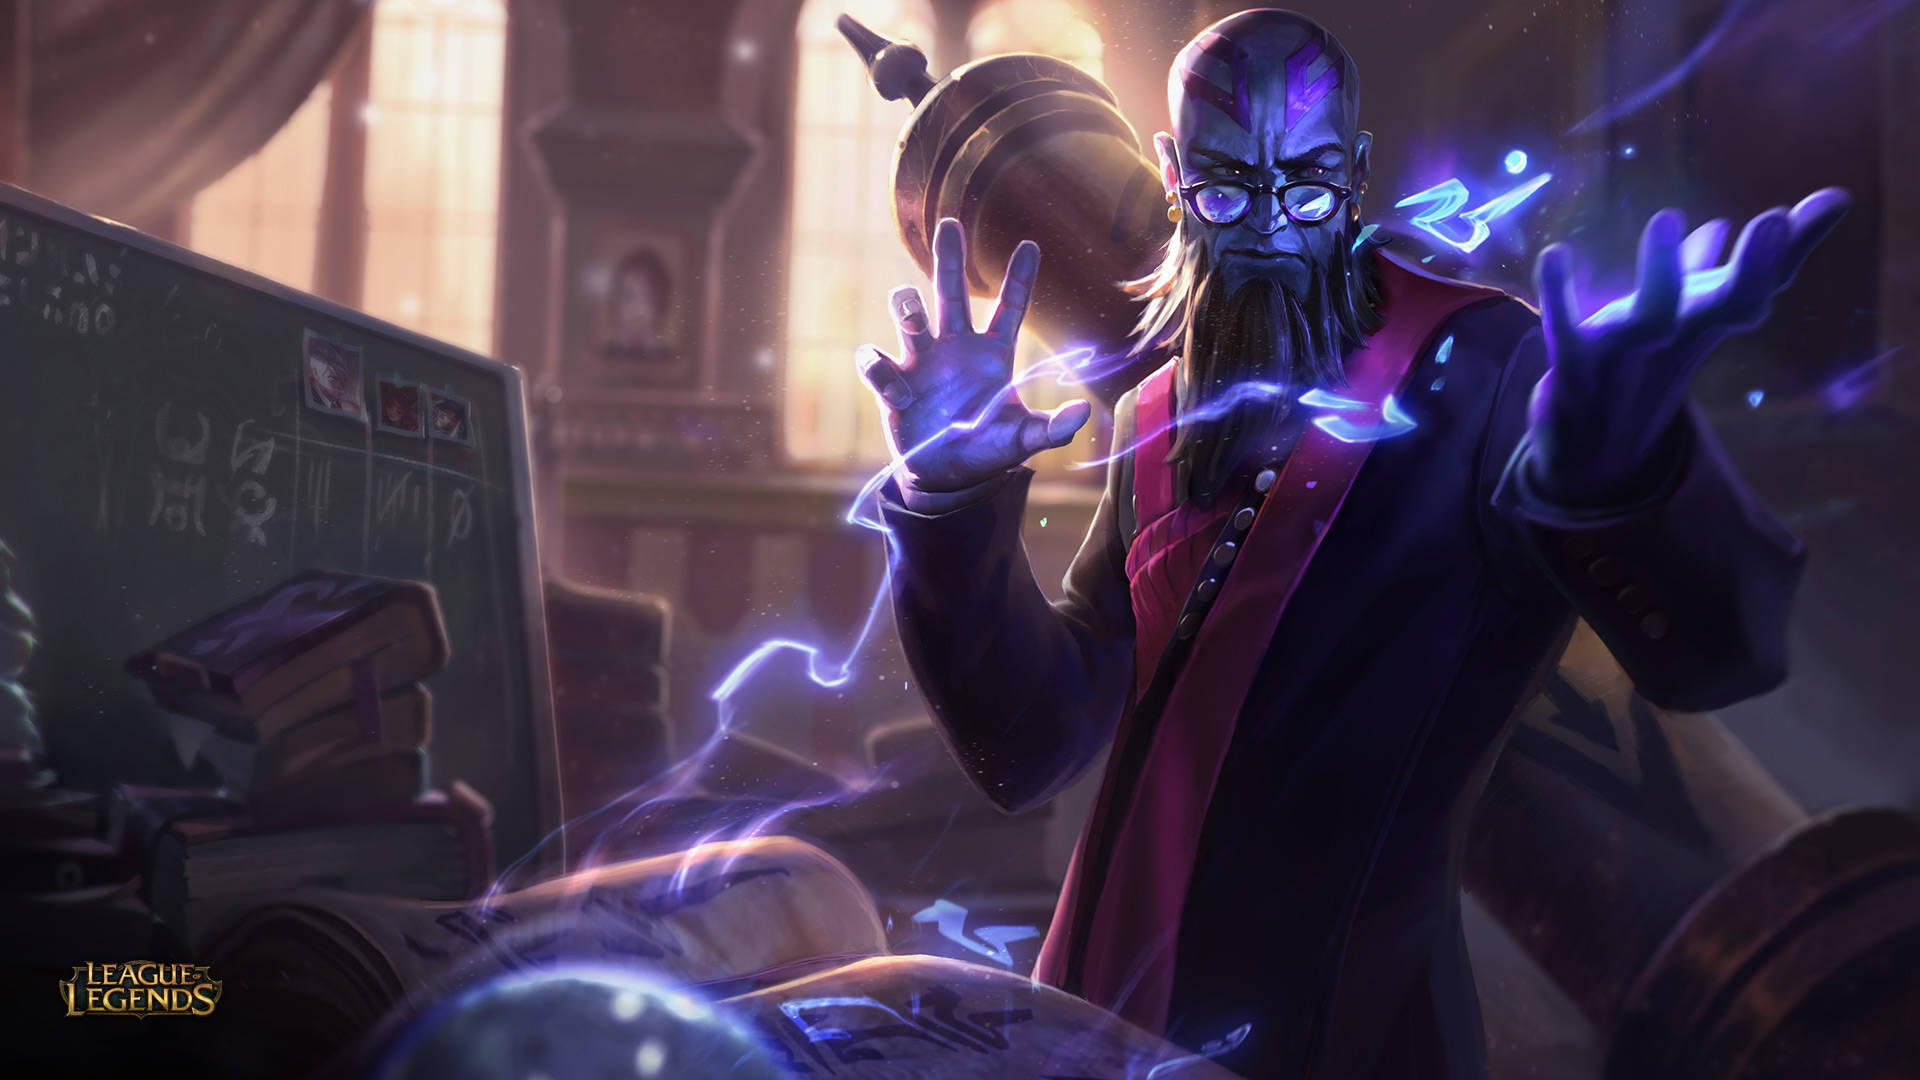 Professor-Ryze-League-Of-Legends-Wallpaper-HD-1920x1080